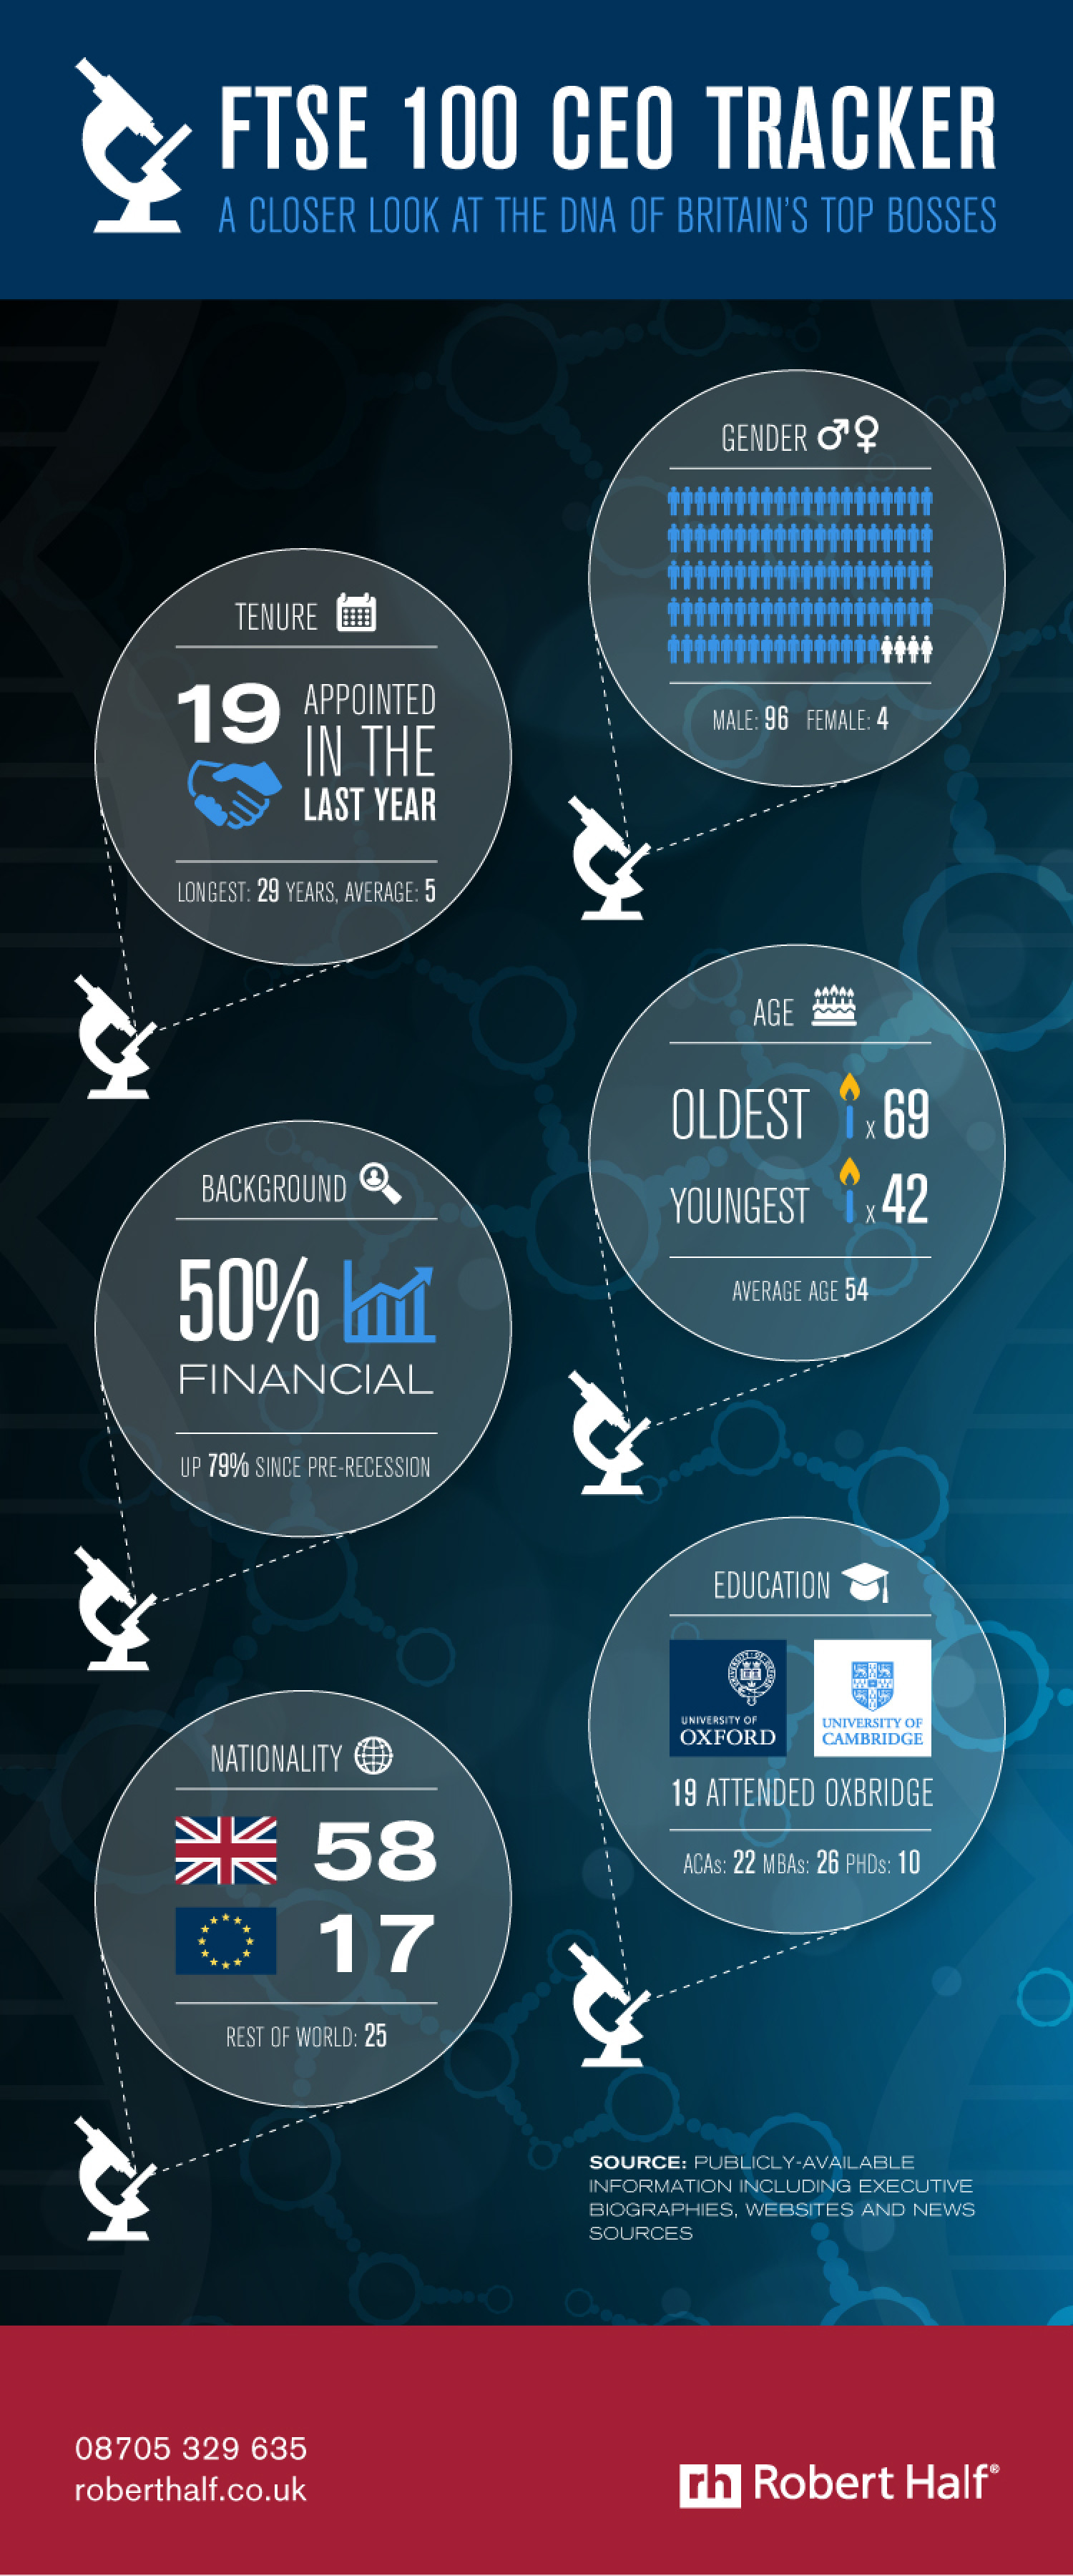 FTSE 100 CEO Tracker Infographic